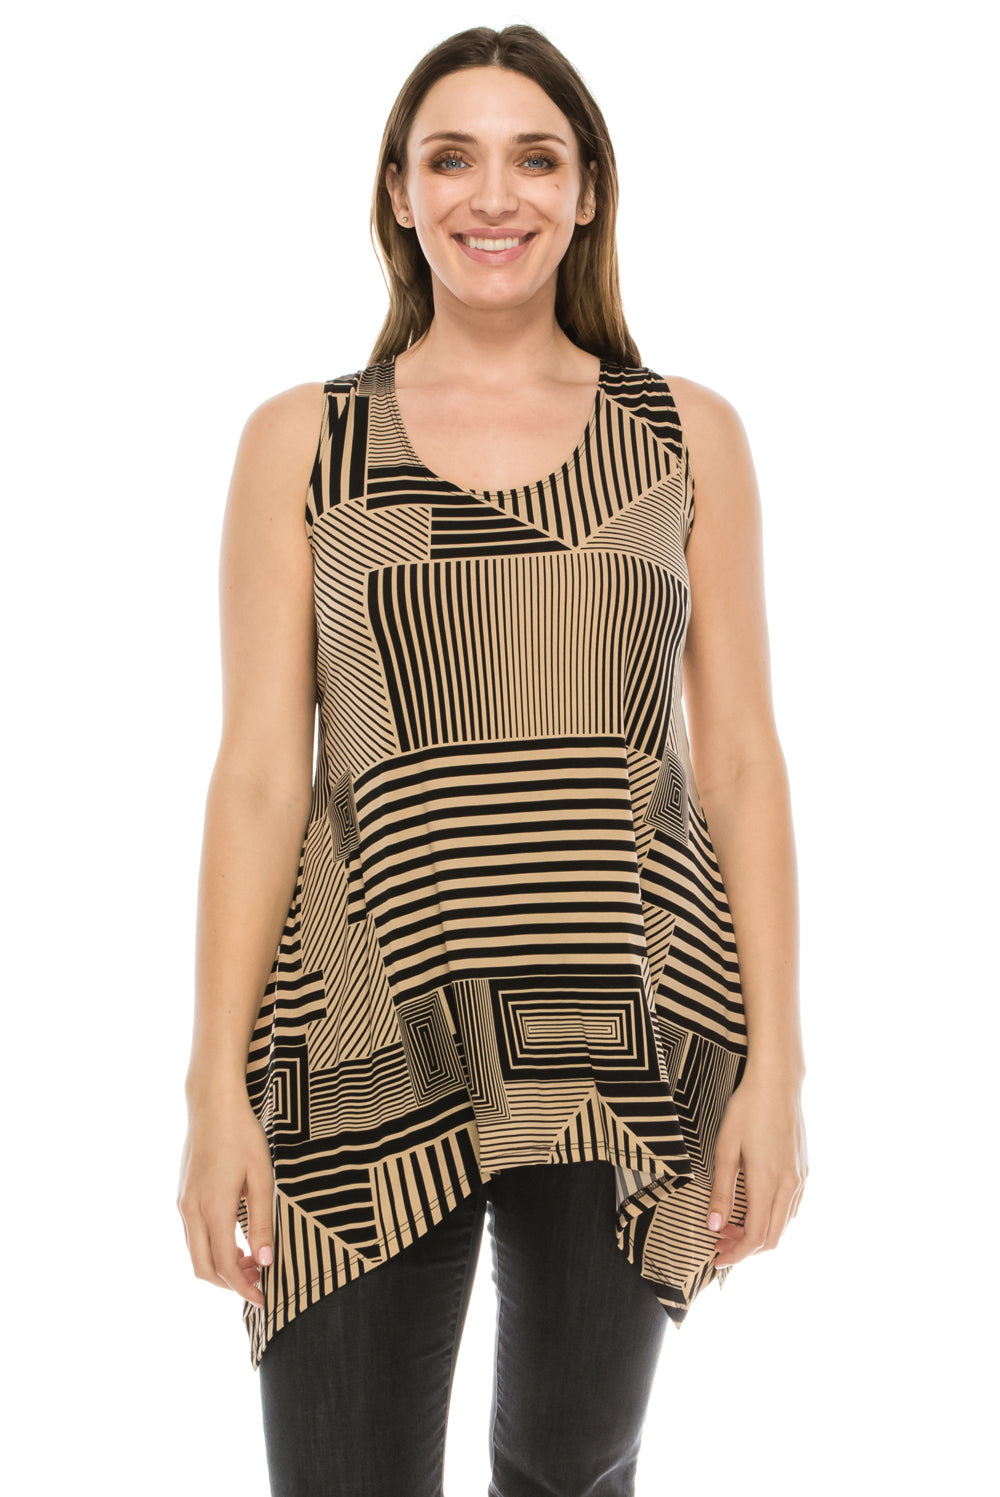 Jostar Women's HIT Side Drop Tank Tunic Plus Print, 230HT-TXP-W911 - Jostar Online